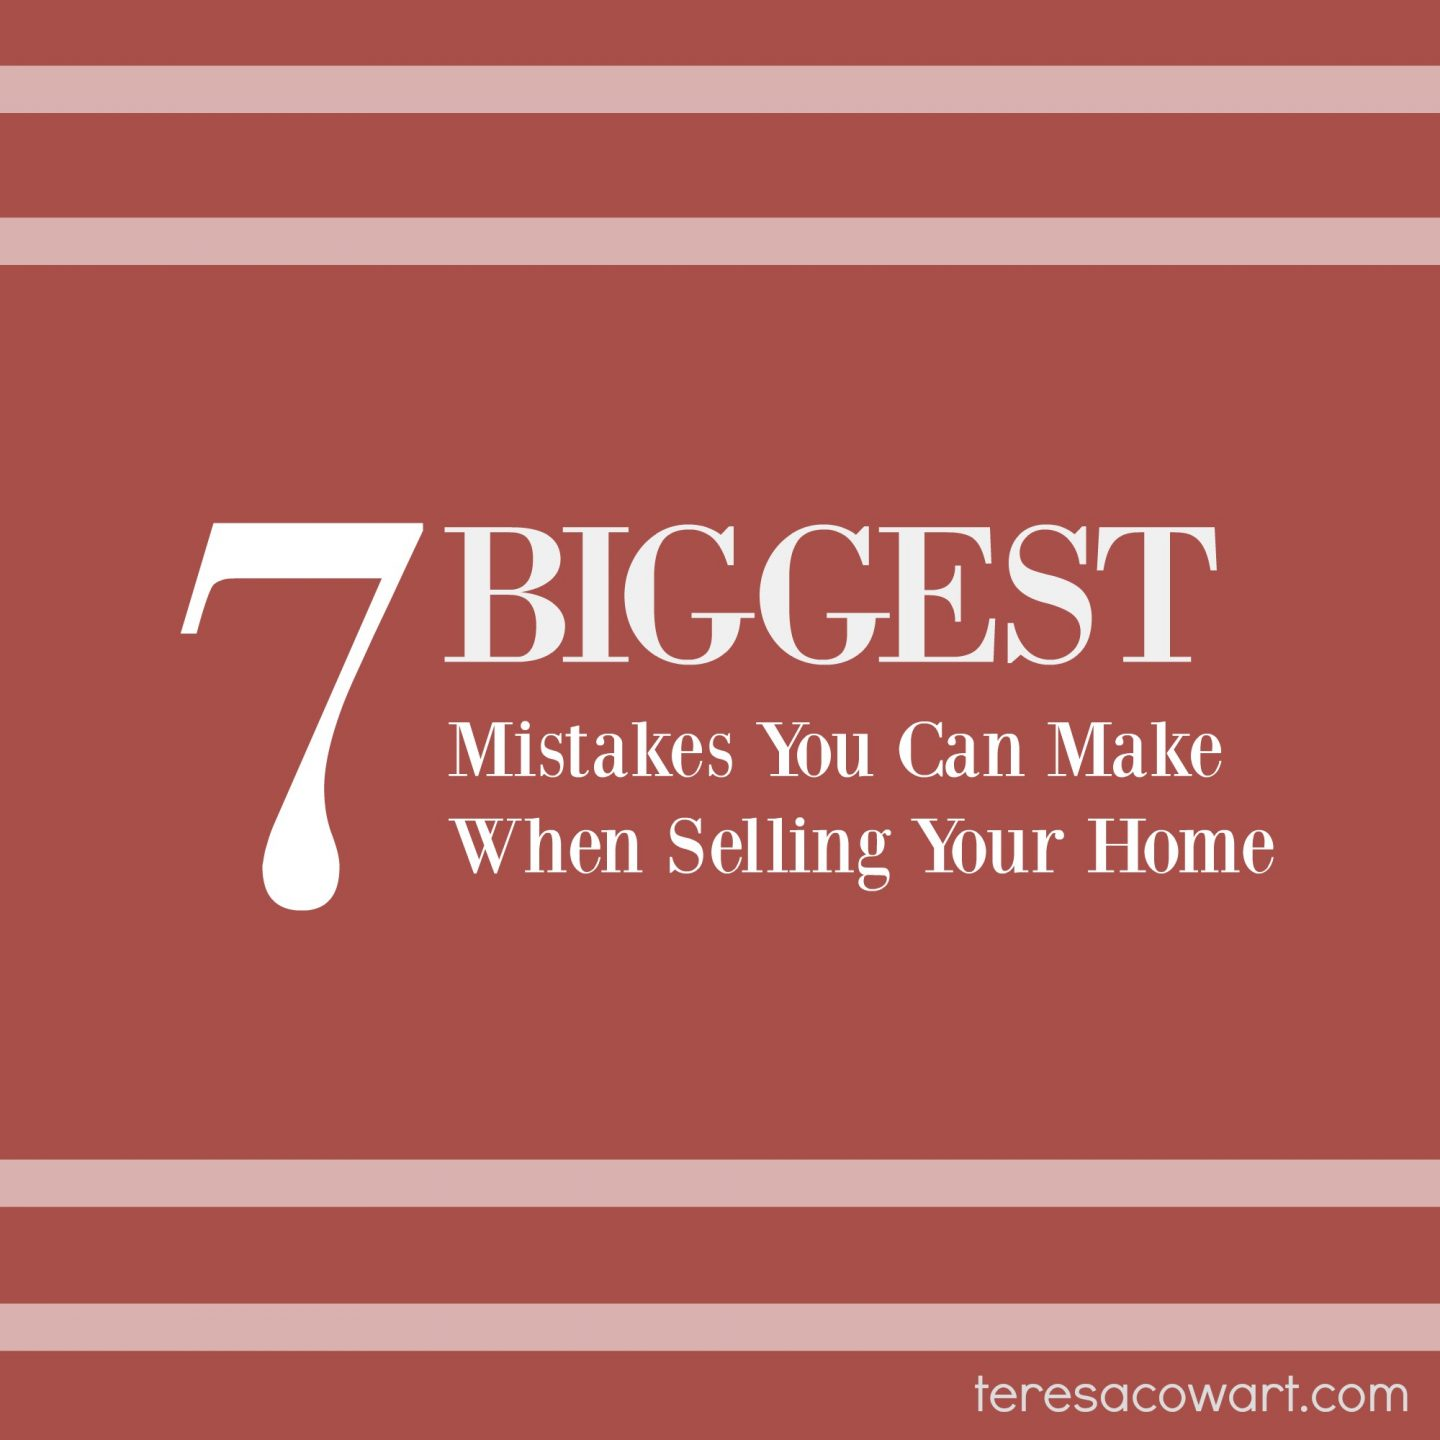 Biggest Mistakes Home Sellers Can Make